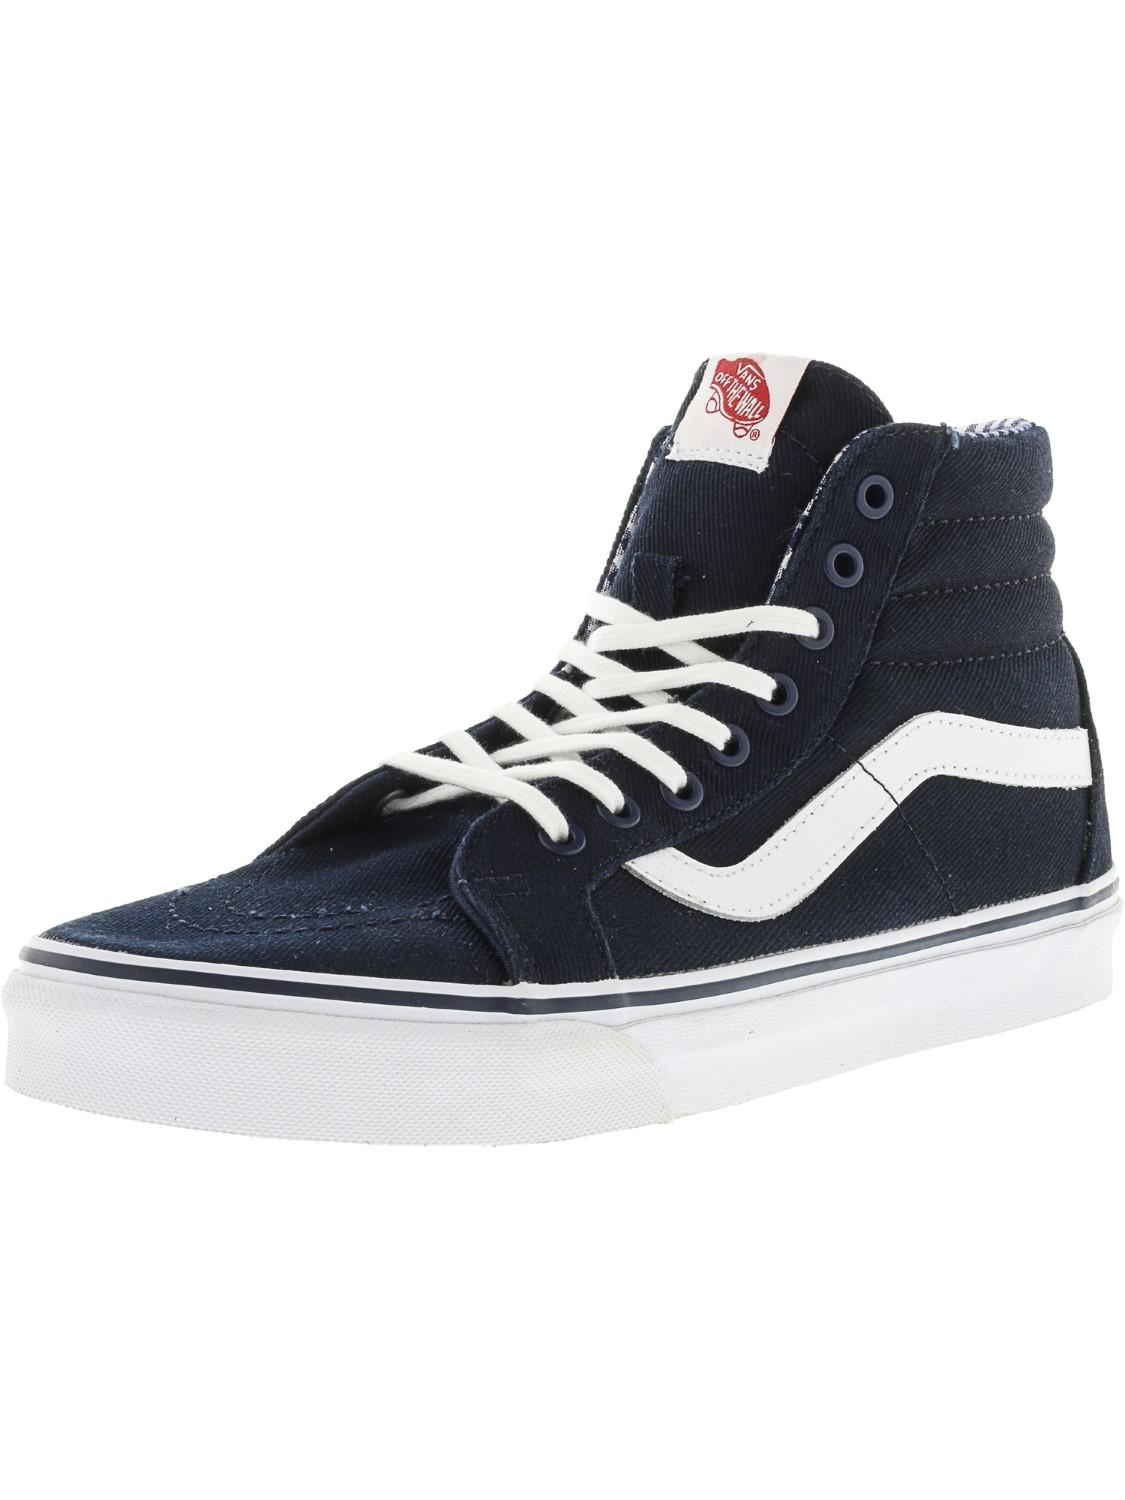 be911d9ea2 Lyst - Vans Sk8-hi Reissue Twill And Gingham Ankle-high Canvas ...